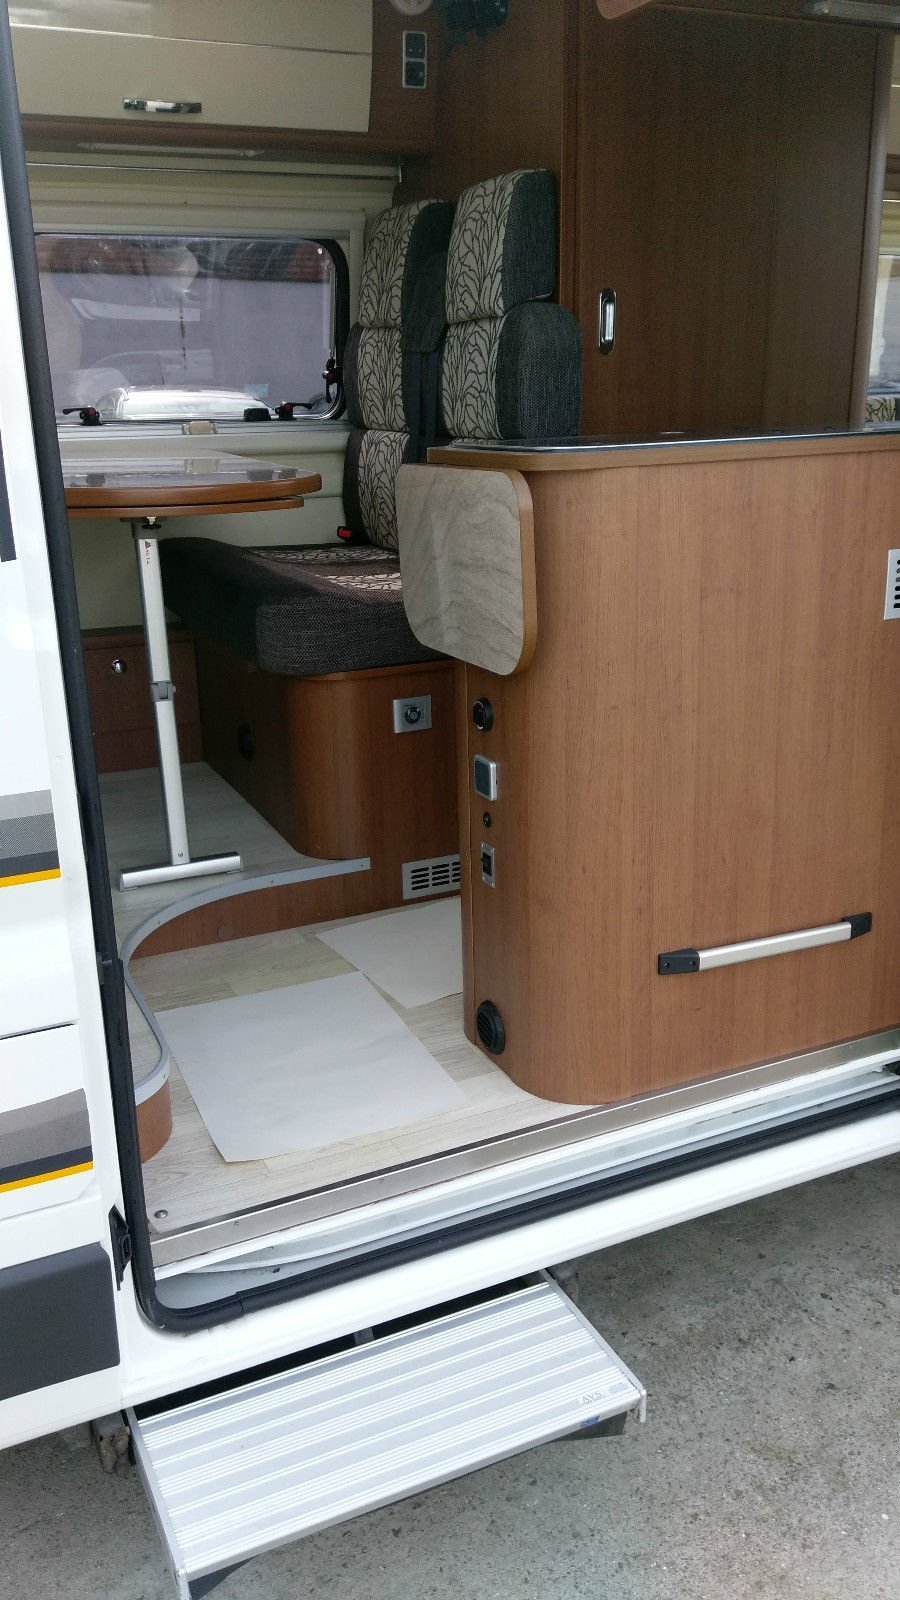 Auto Trail Tribute used motorhome camper van for sale at Wests Motorhome Rental Company